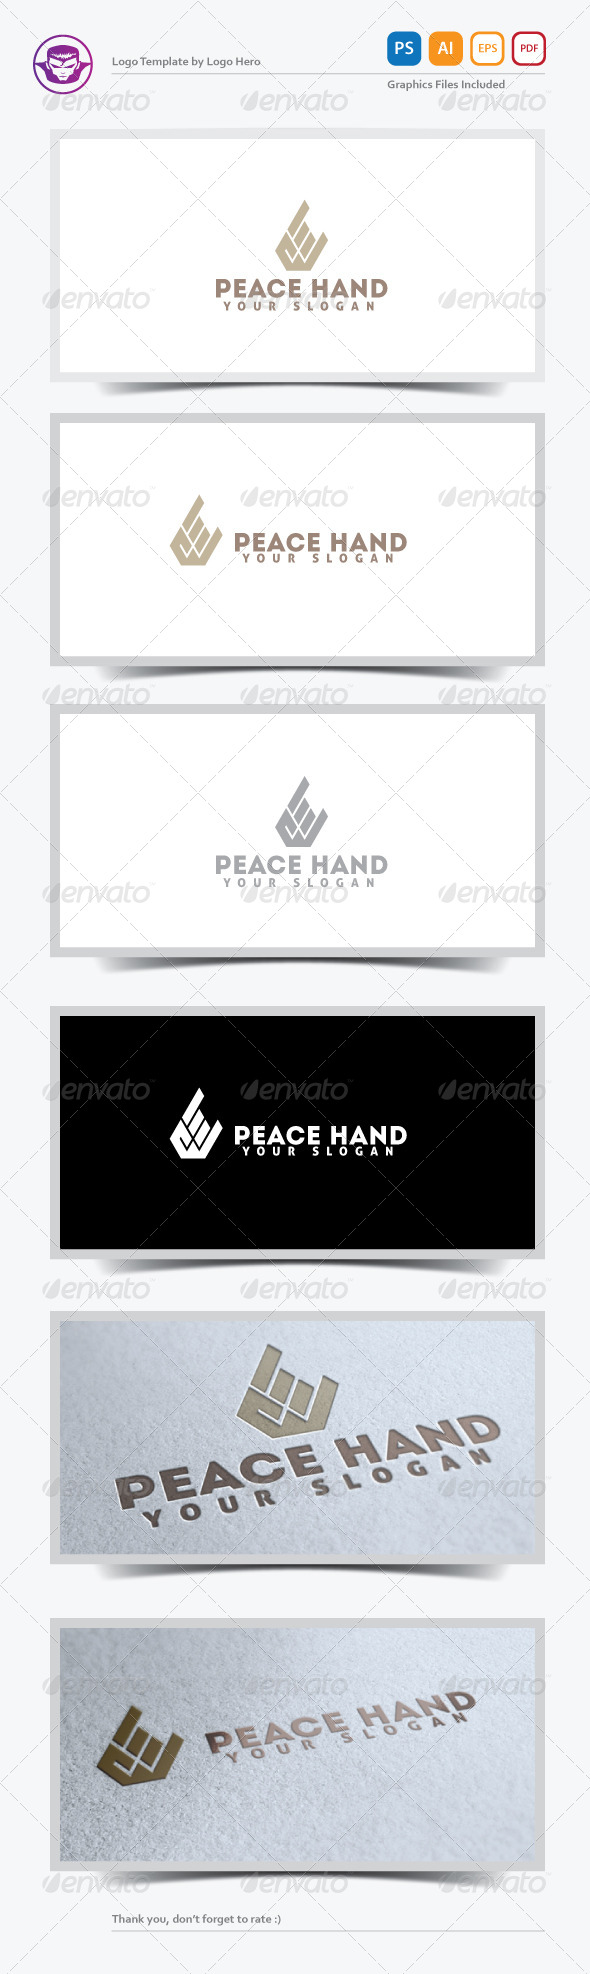 GraphicRiver Peace Hand Logo Template 5232095